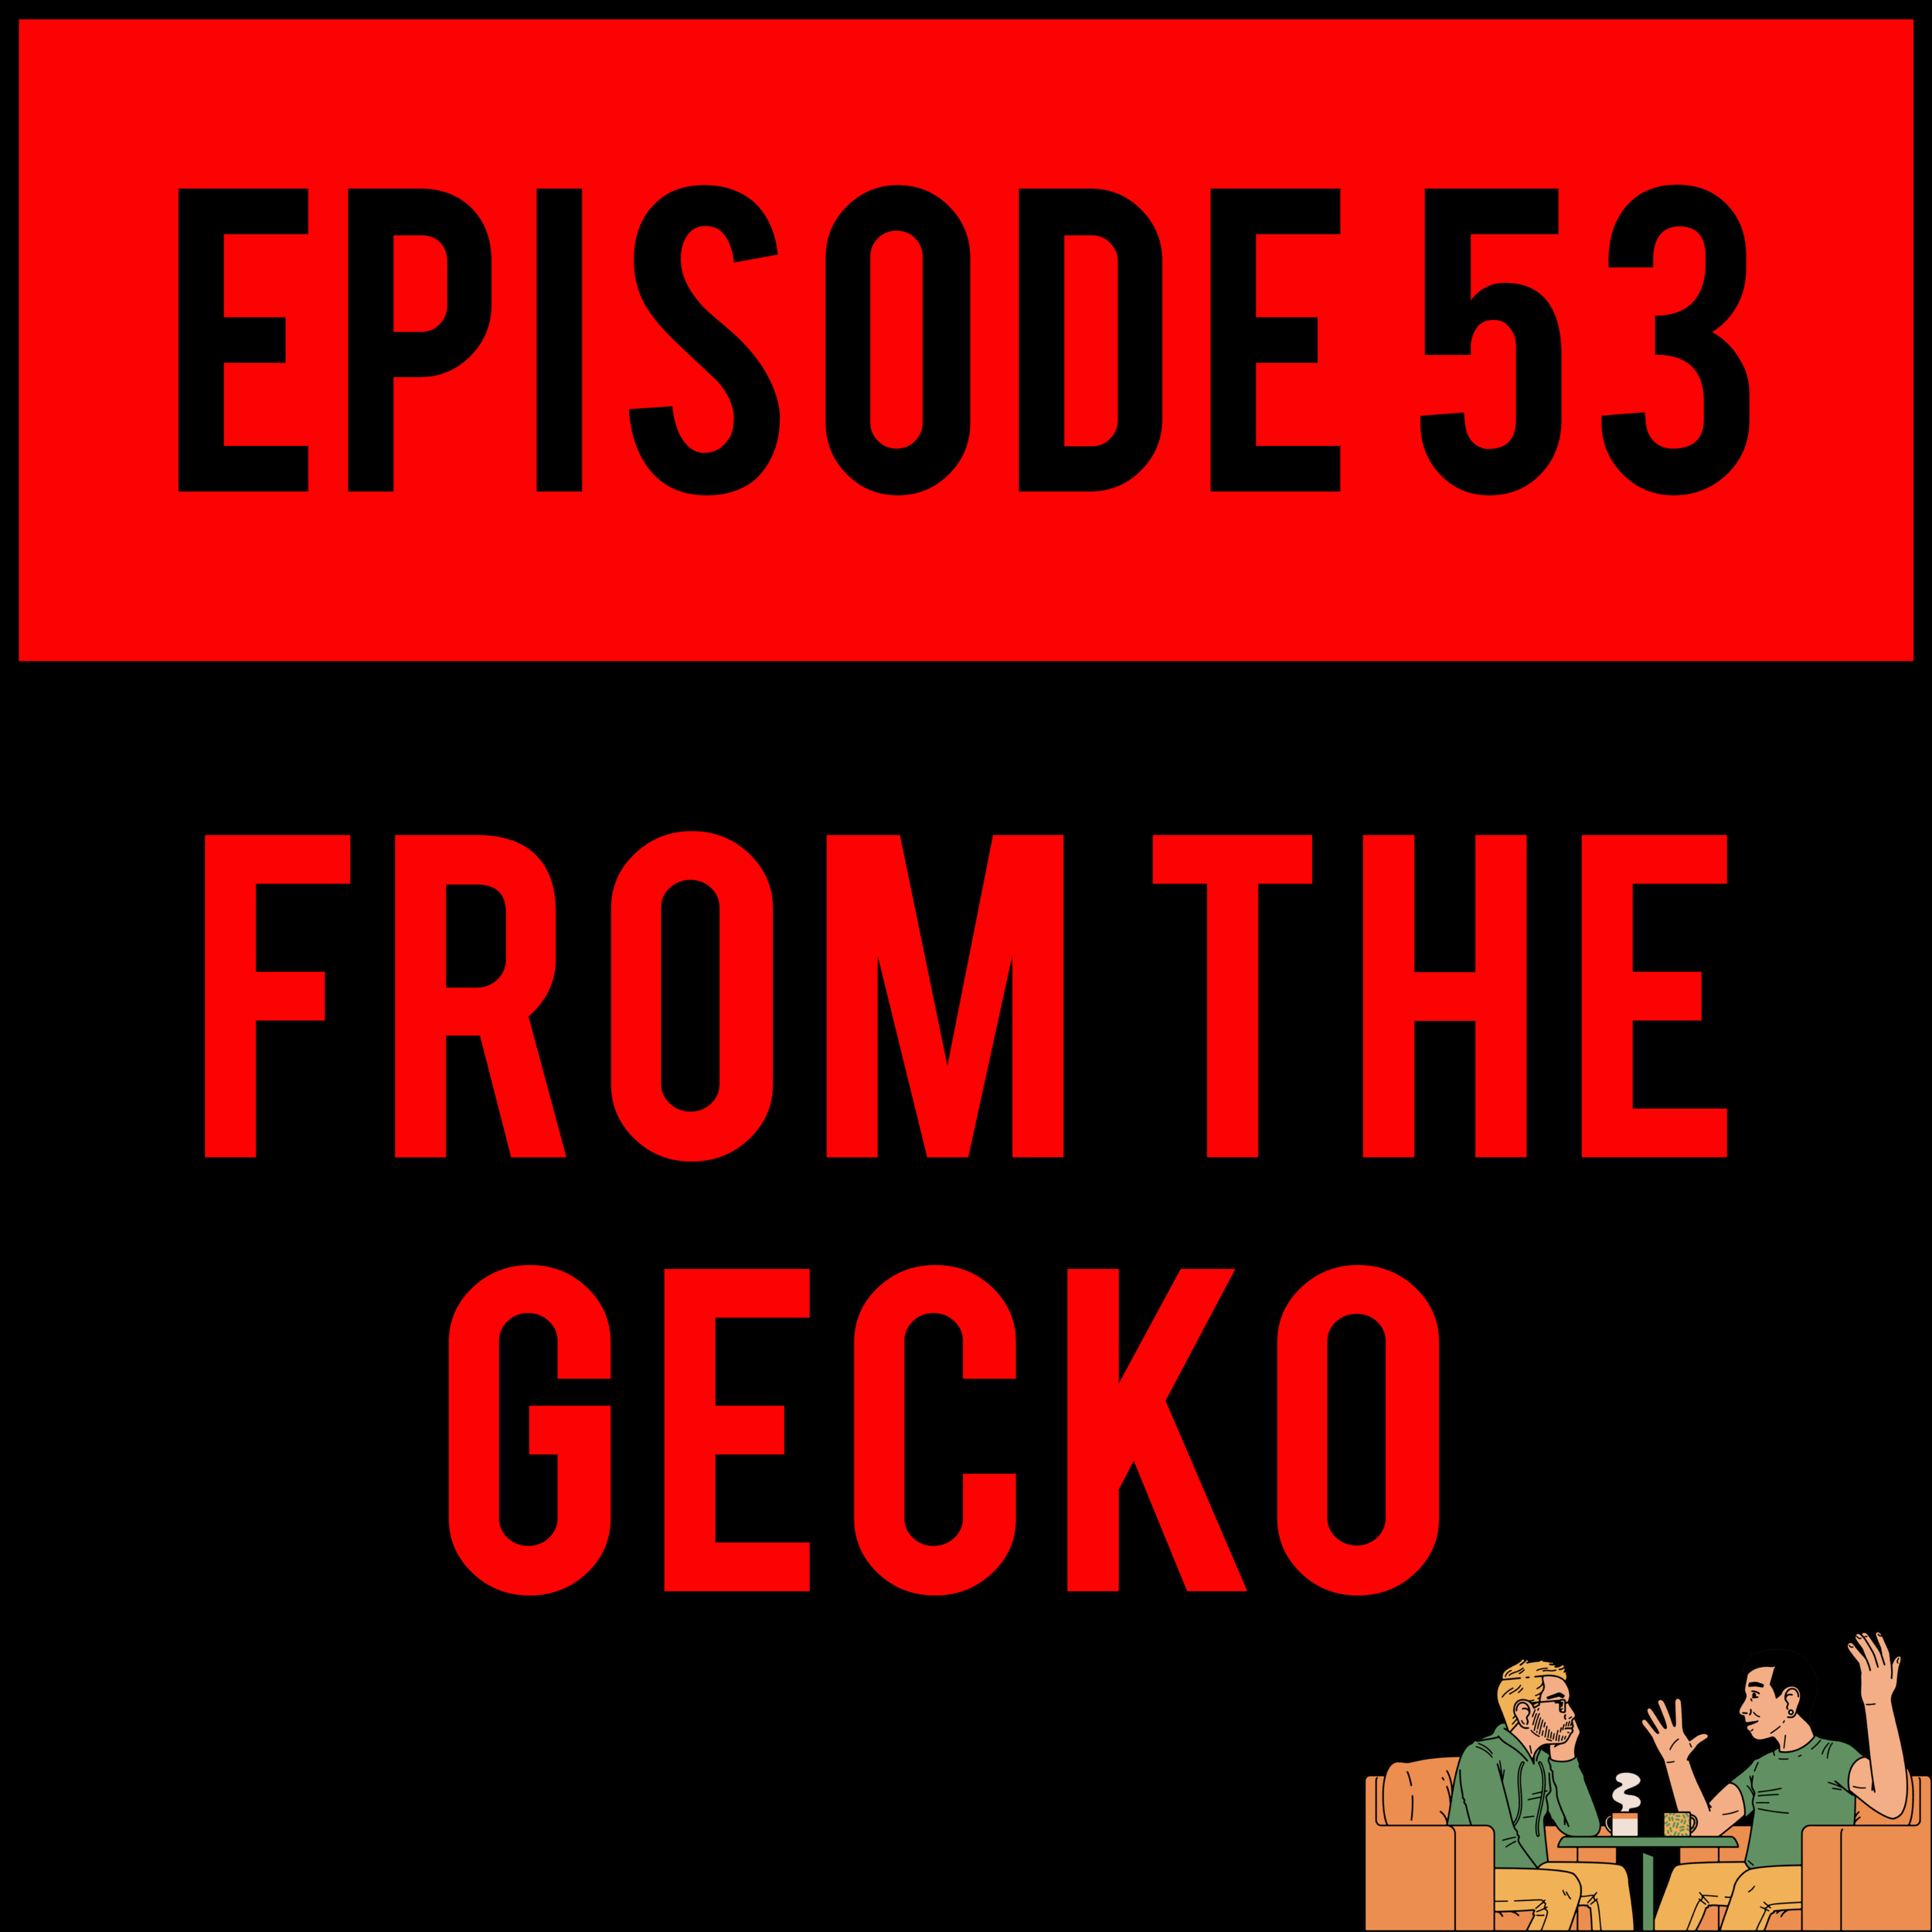 EPISODE 53 - Alex perfects his Norwegian/Viking/bastardized accent, Huge Jackfan actually has a face and Justyn learns you all about 🦴 ðŸ�Ž ðŸ�µ. You already know what it is. FROM THE GECKO - EPISODE 53 is more powerful than you could possibly imagine.